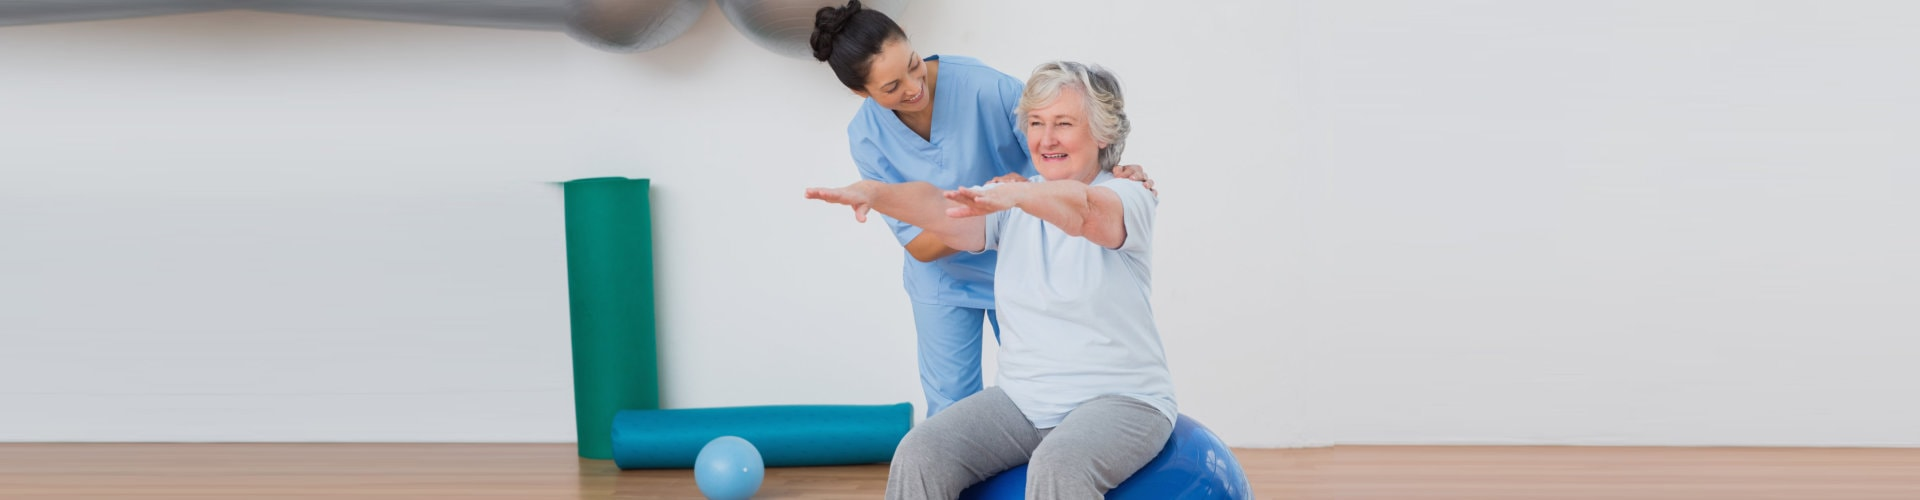 therapist assisting a senior woman sitting on an exercise ball